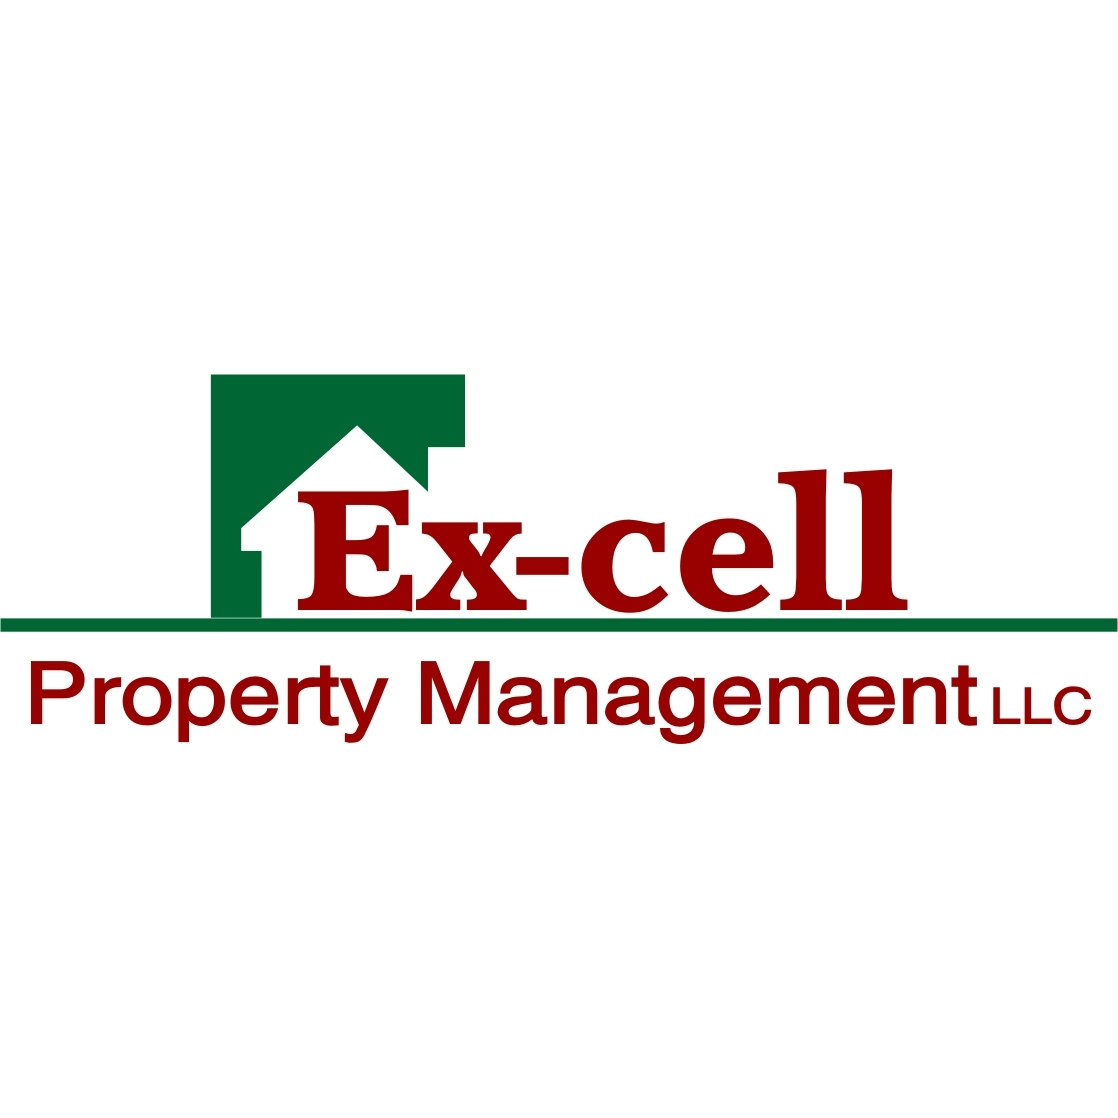 Ex-Cell Property Management LLC